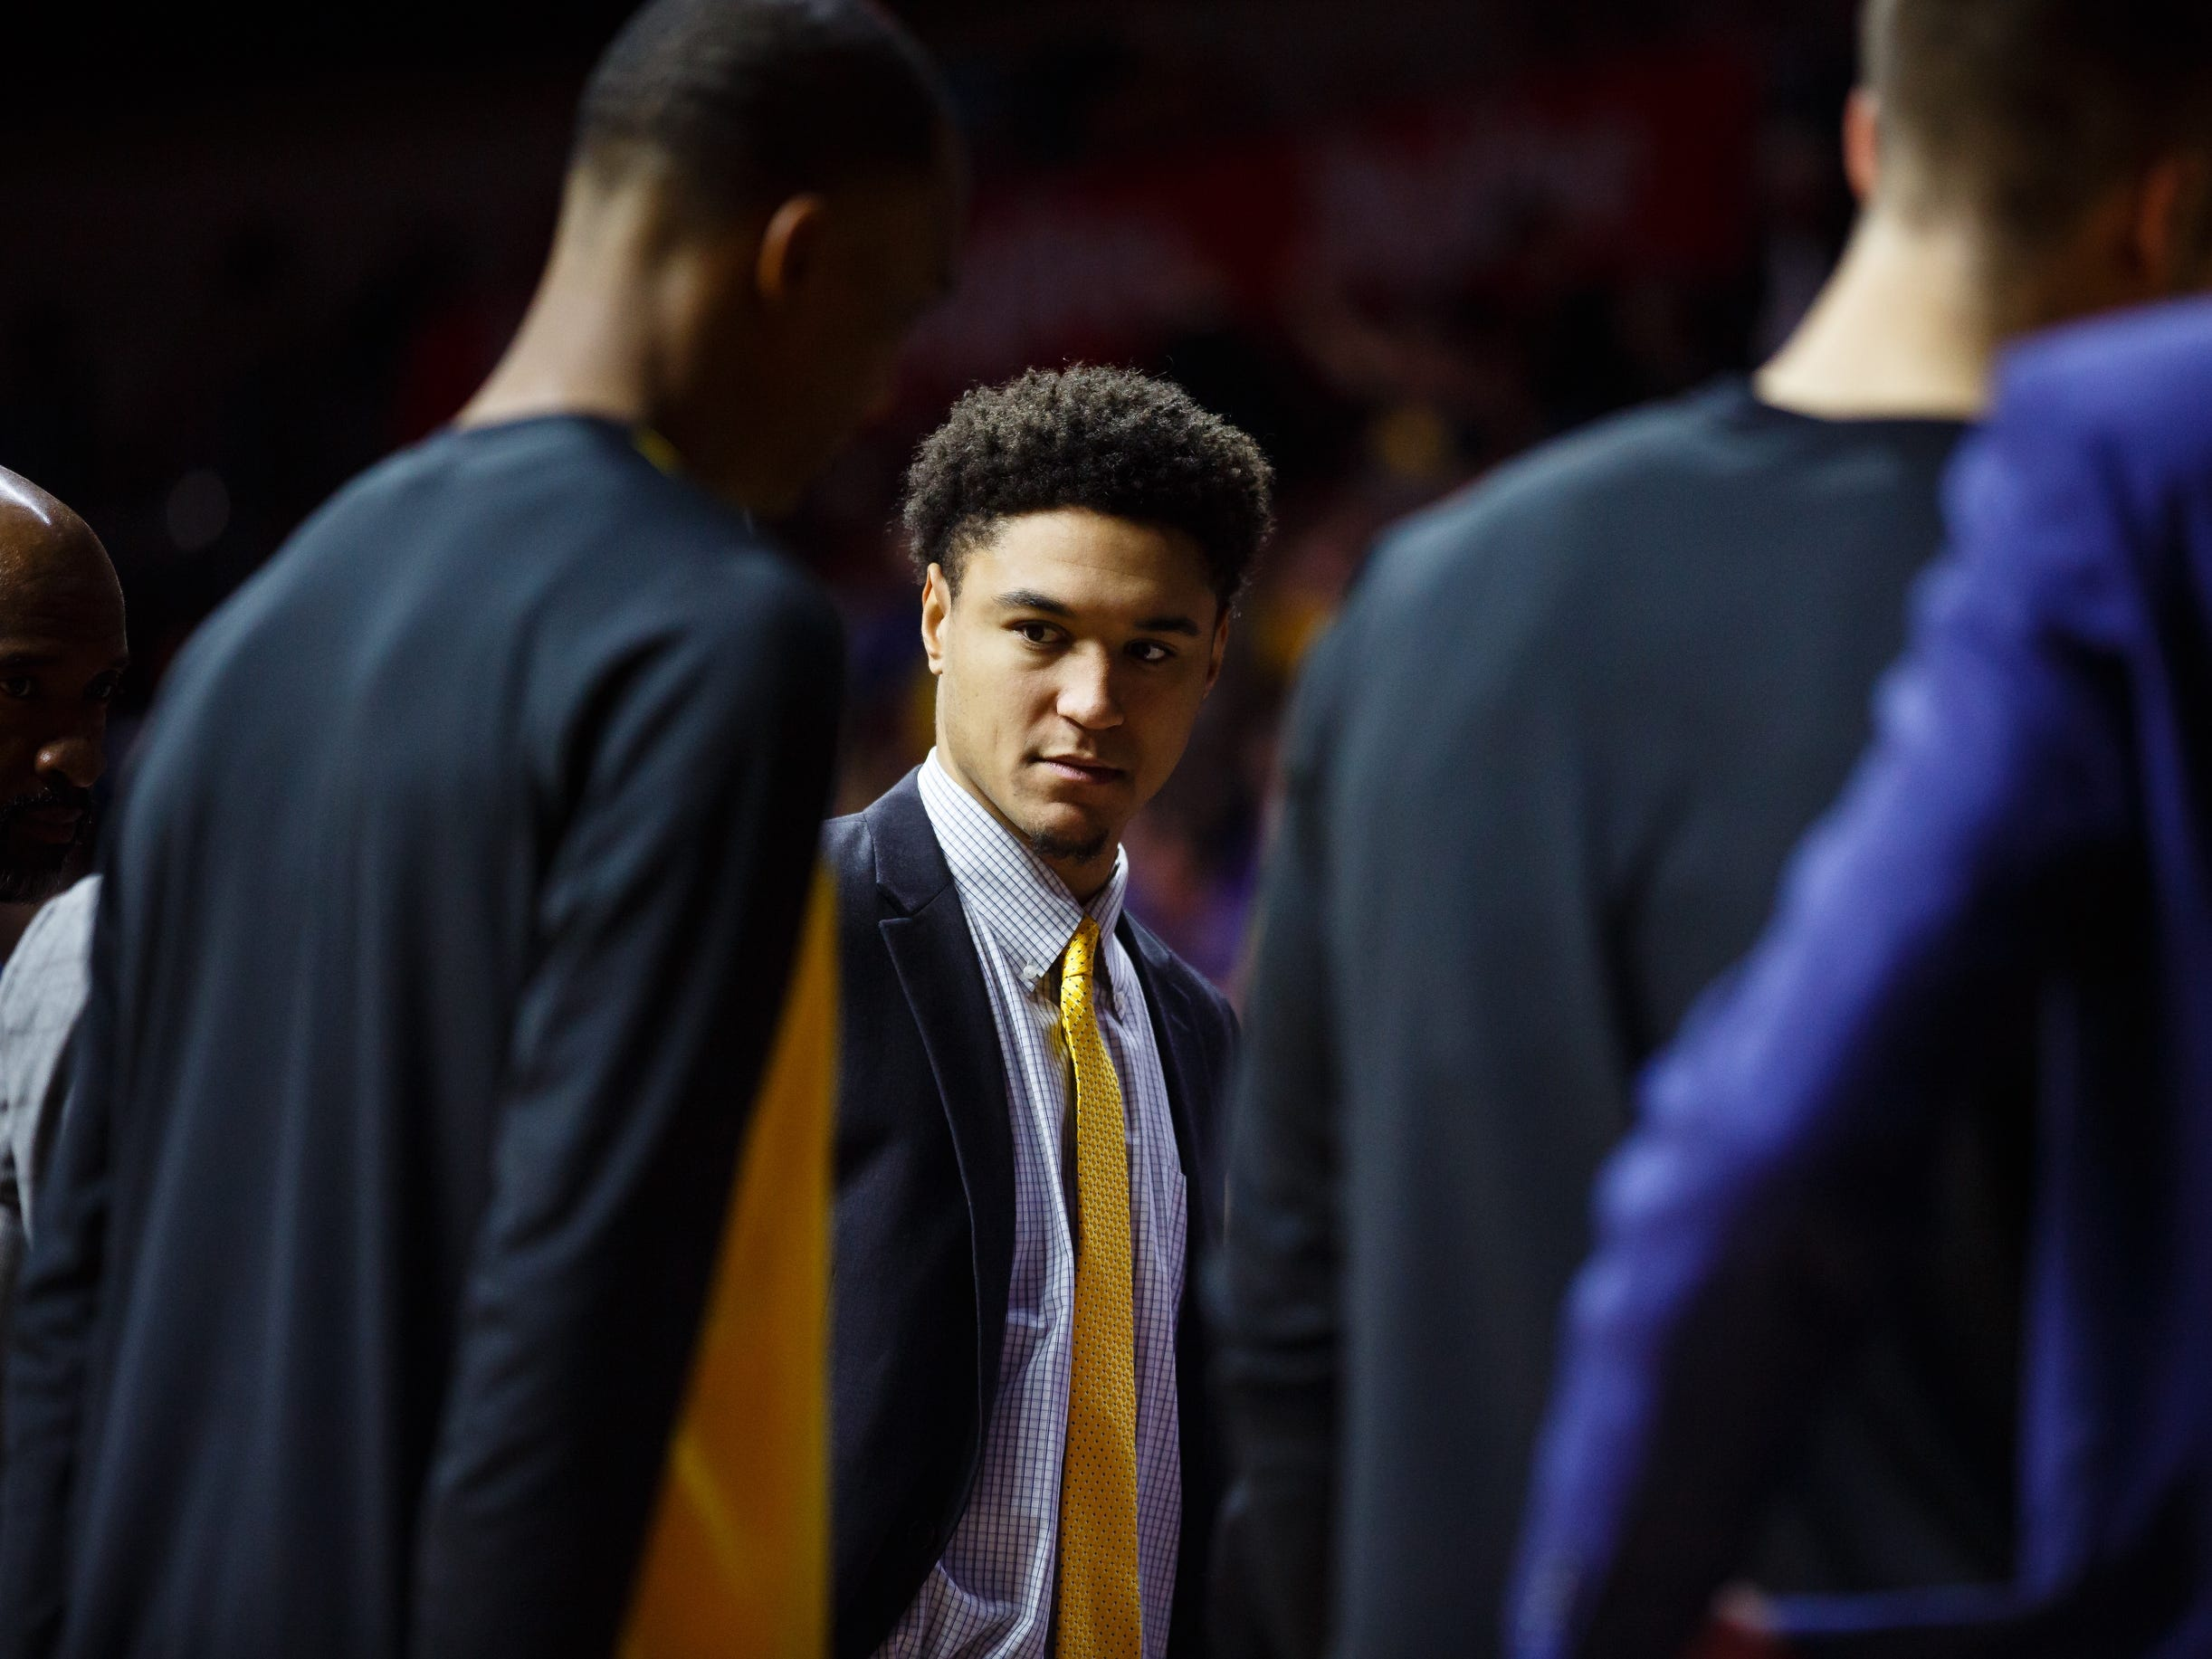 Iowa's Cordell Pemsl (35) sits on the bench during their basketball game at the Hy-Vee Classic on Saturday, Dec. 15, 2018, in Des Moines. Iowa would go on to defeat UNI 77-54.